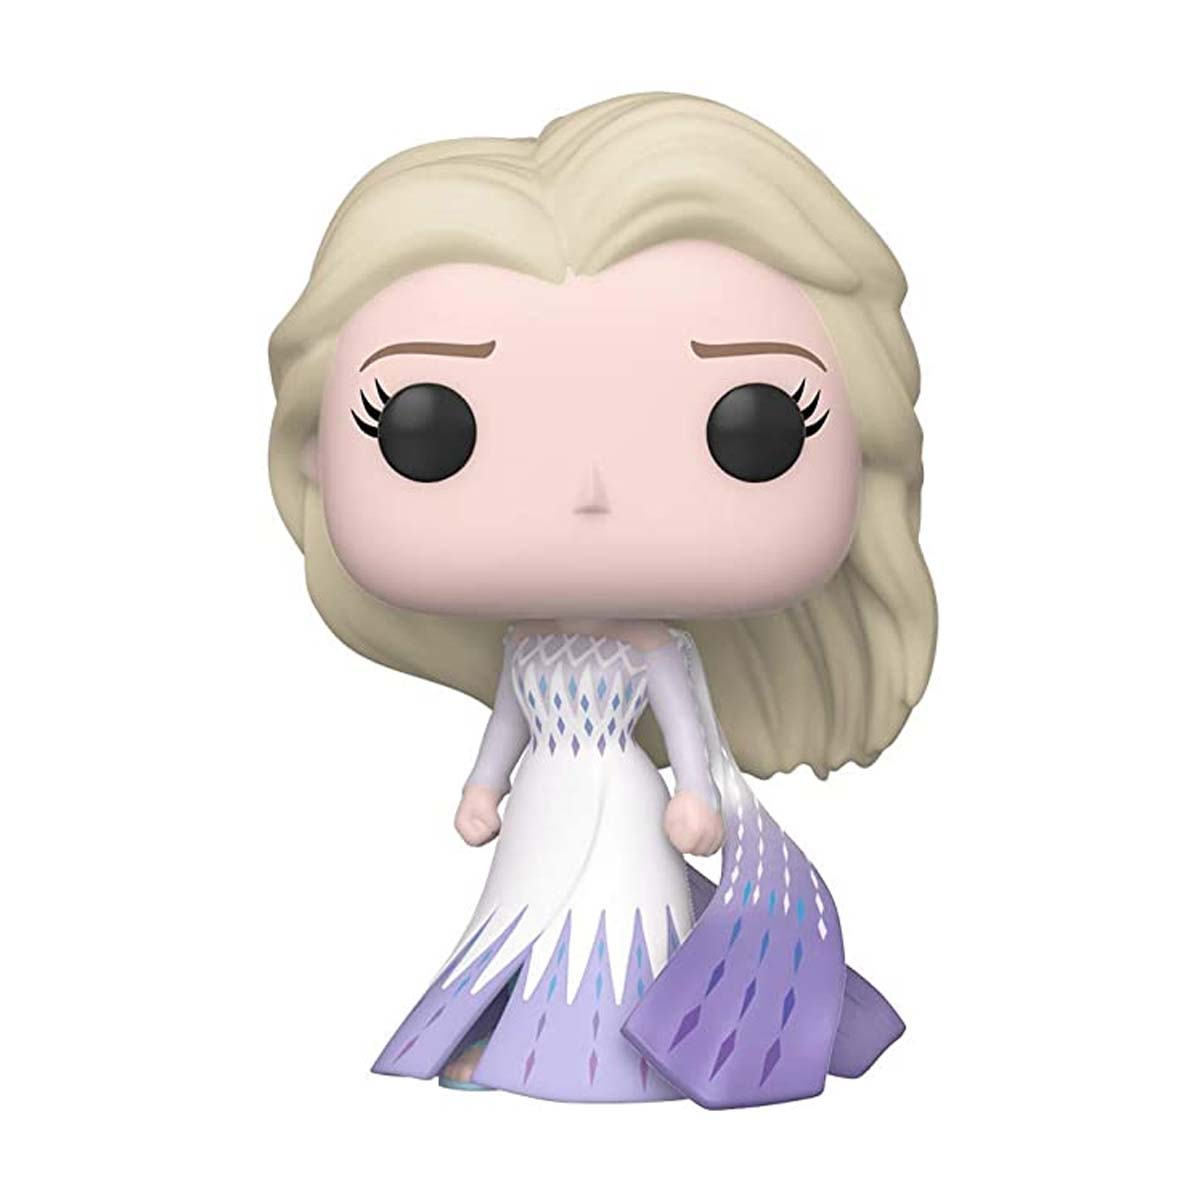 Elsa Funko Pop 731 Disney Frozen 2